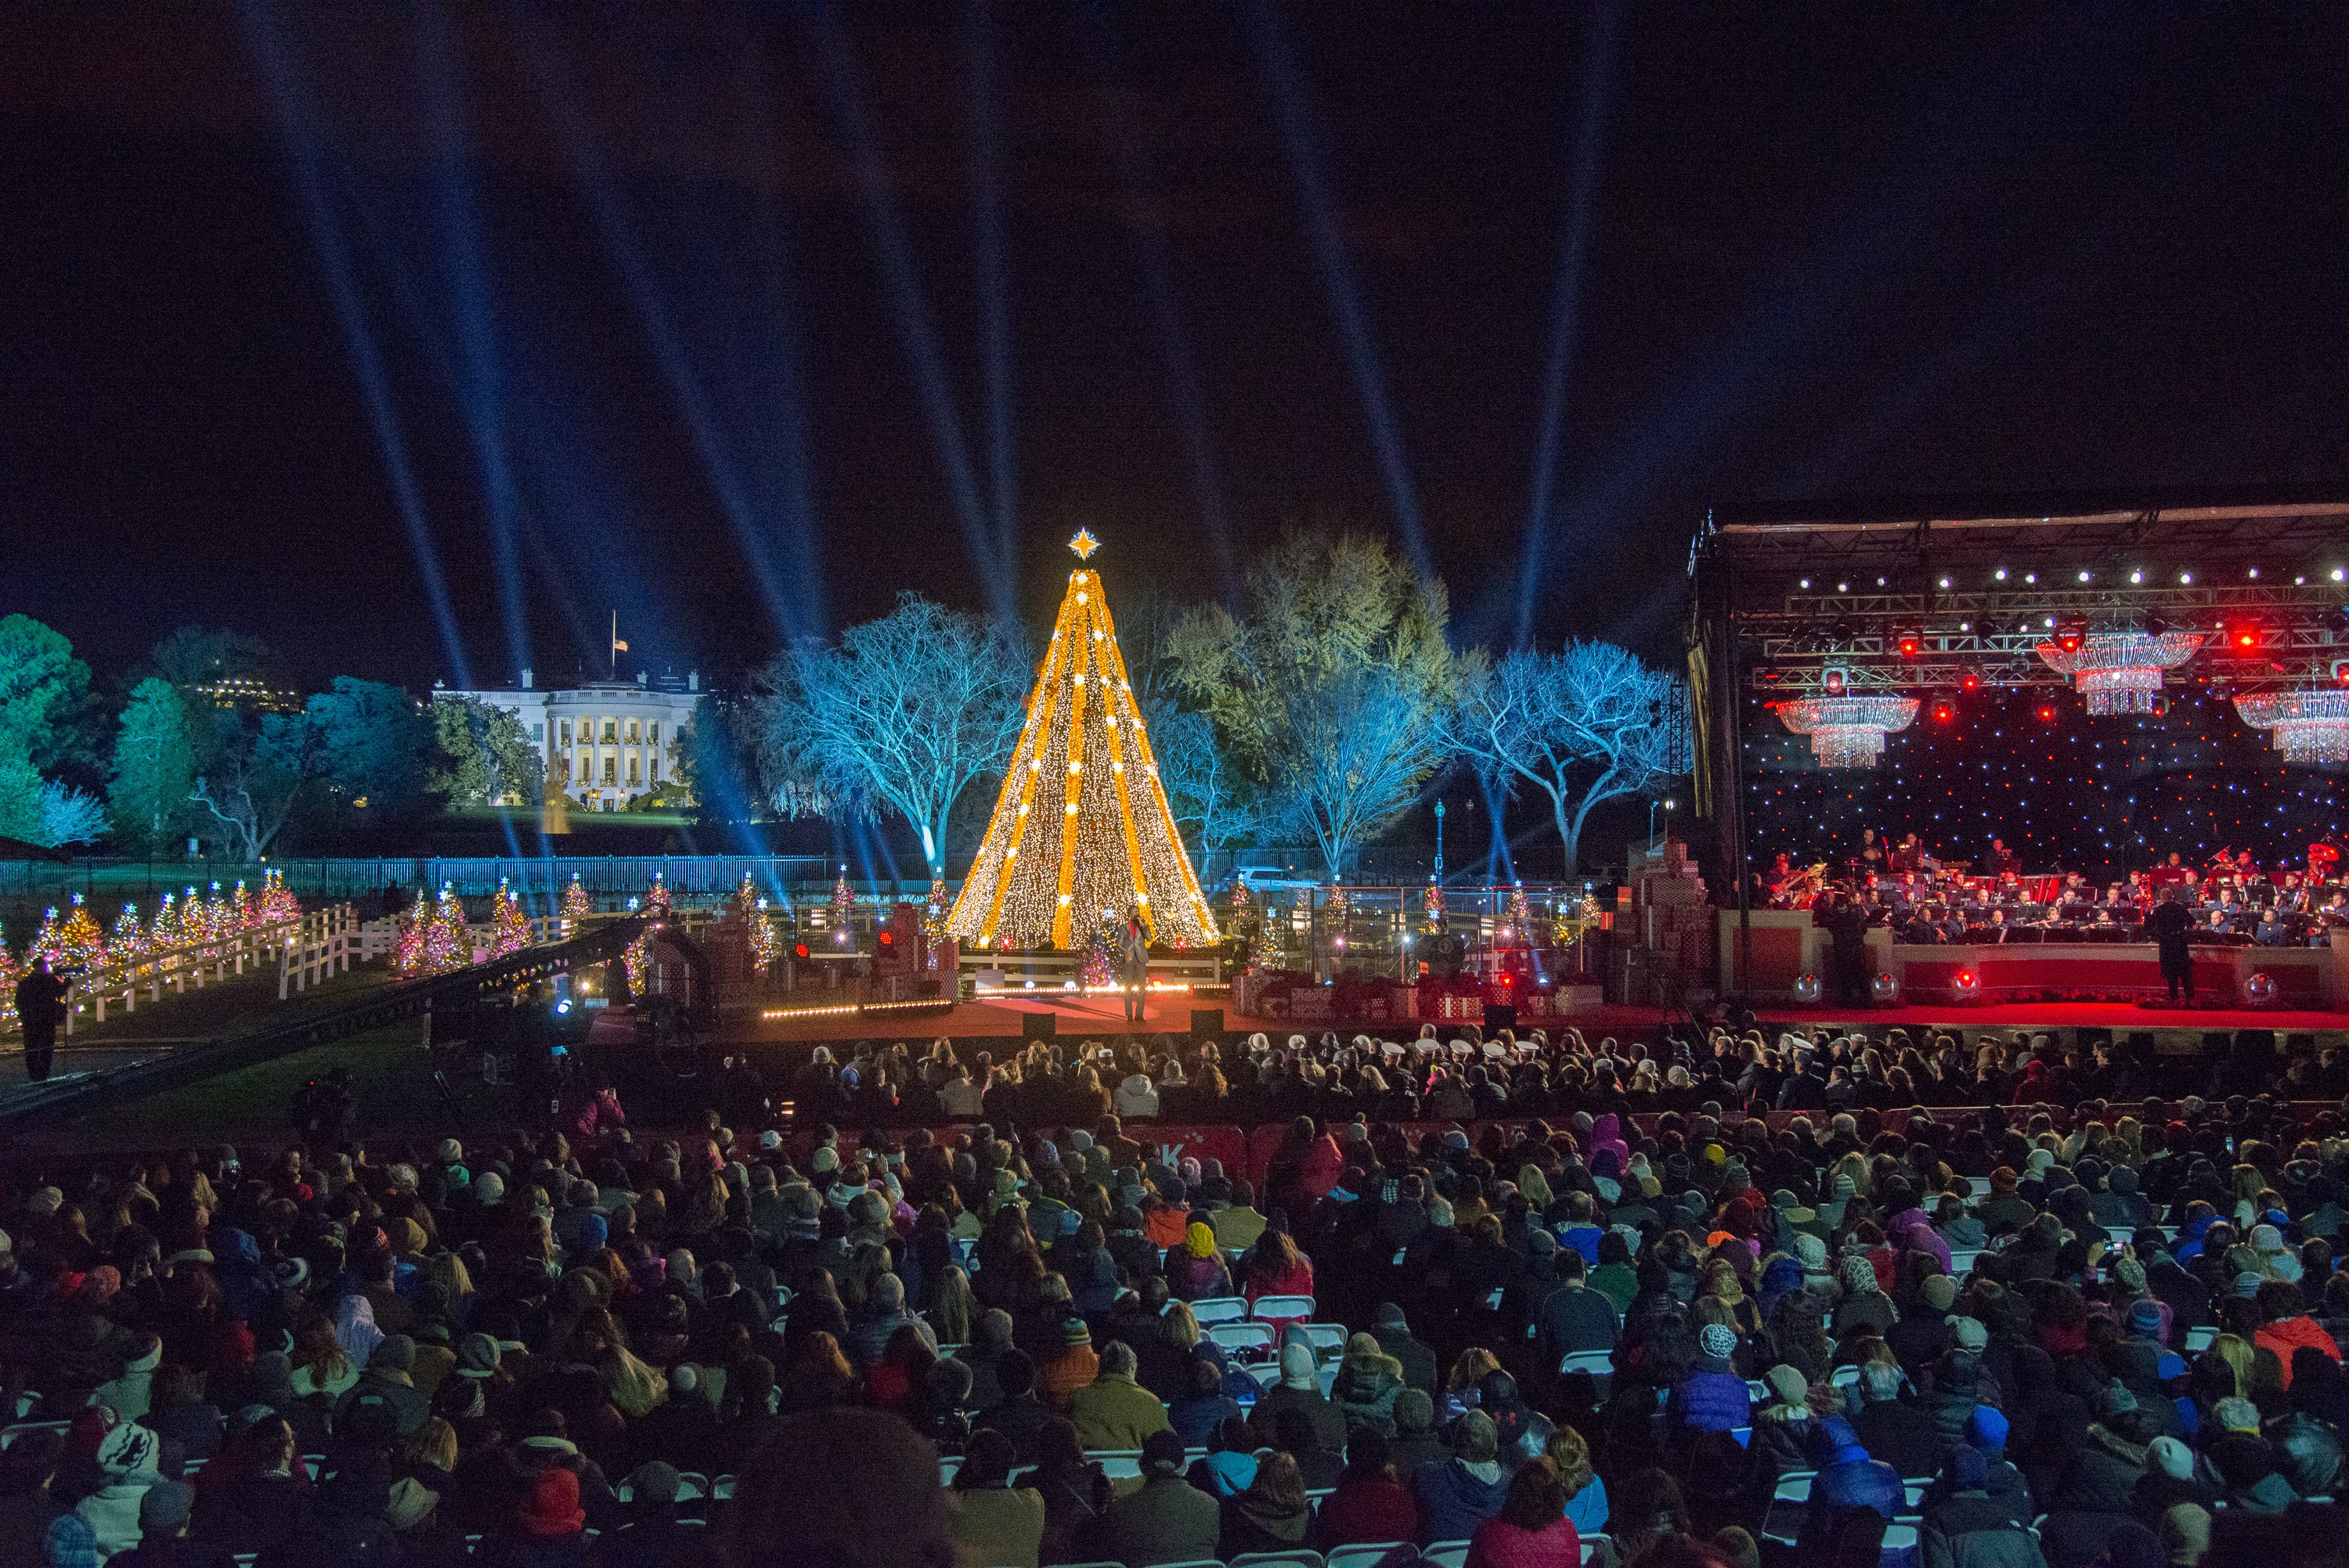 About the National Christmas Tree Lighting | National Christmas Tree ...